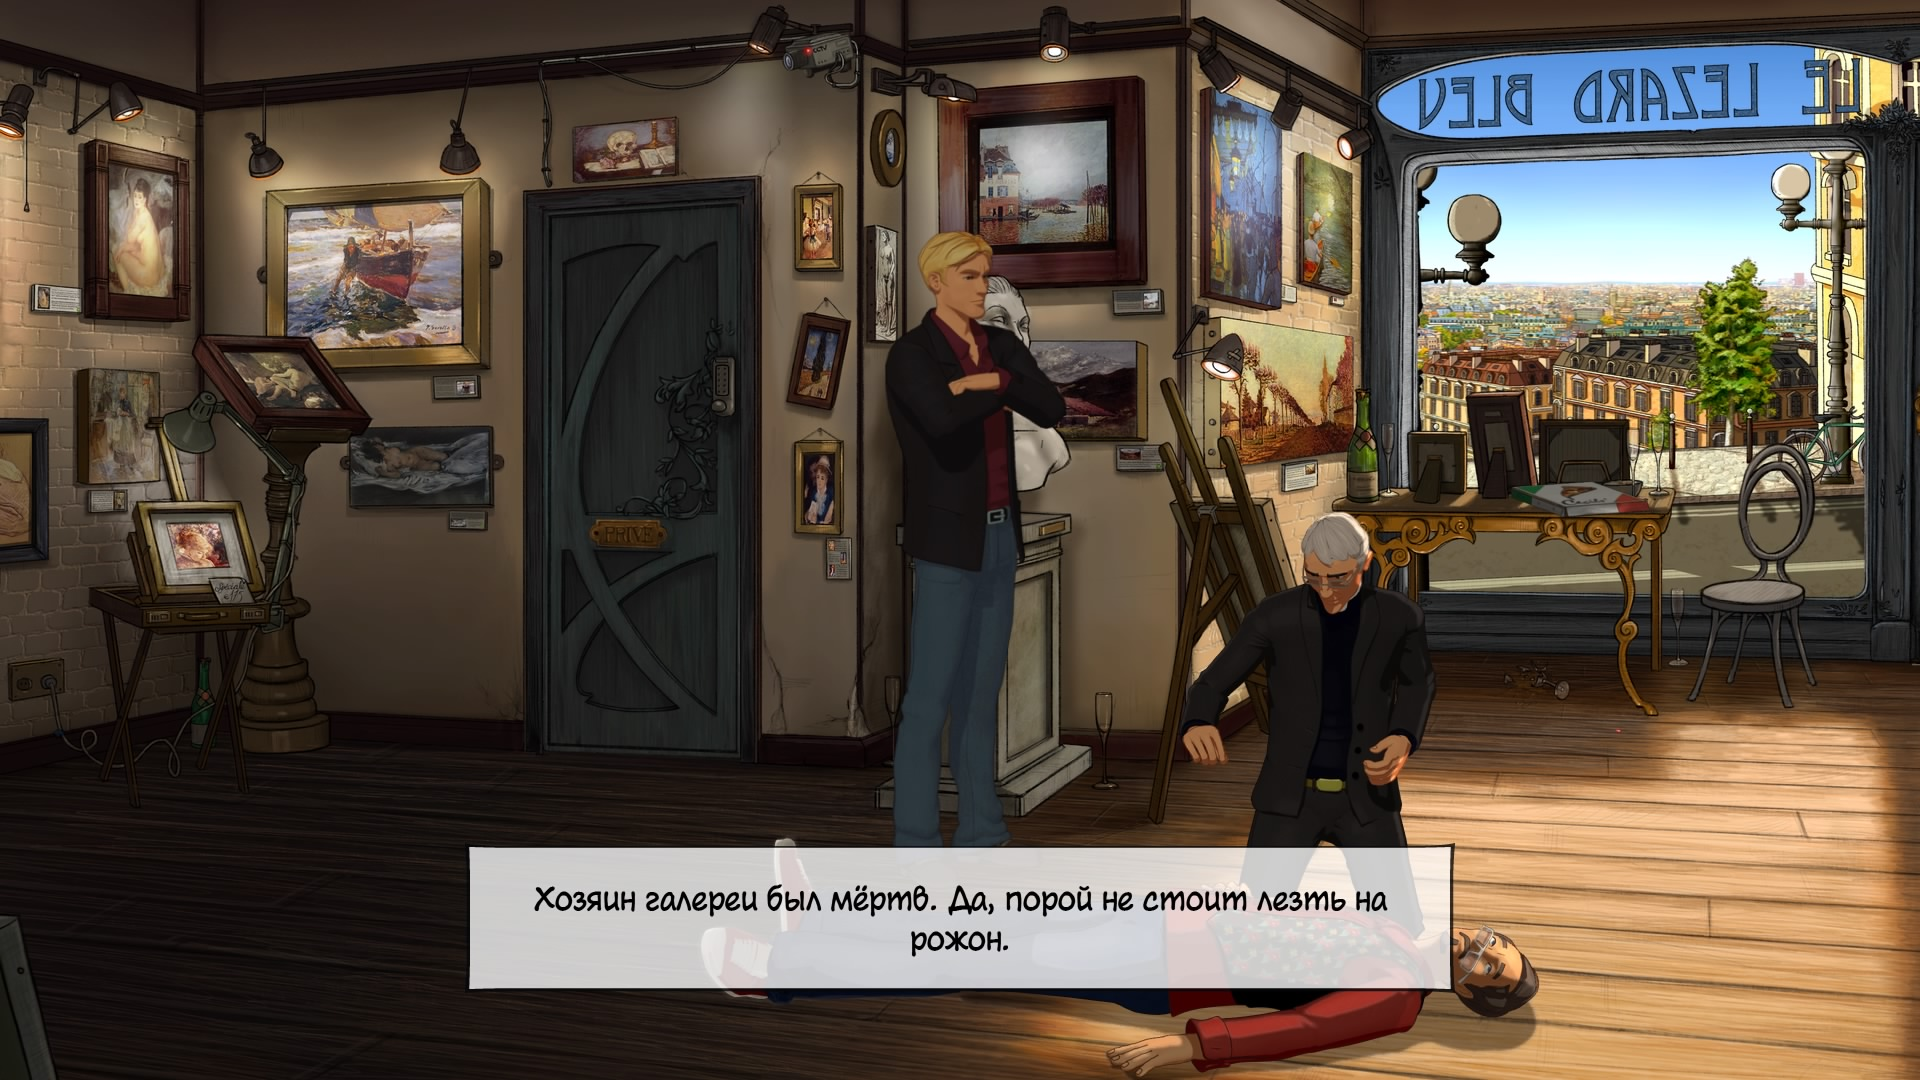 Broken Sword 5: Serpents Curse